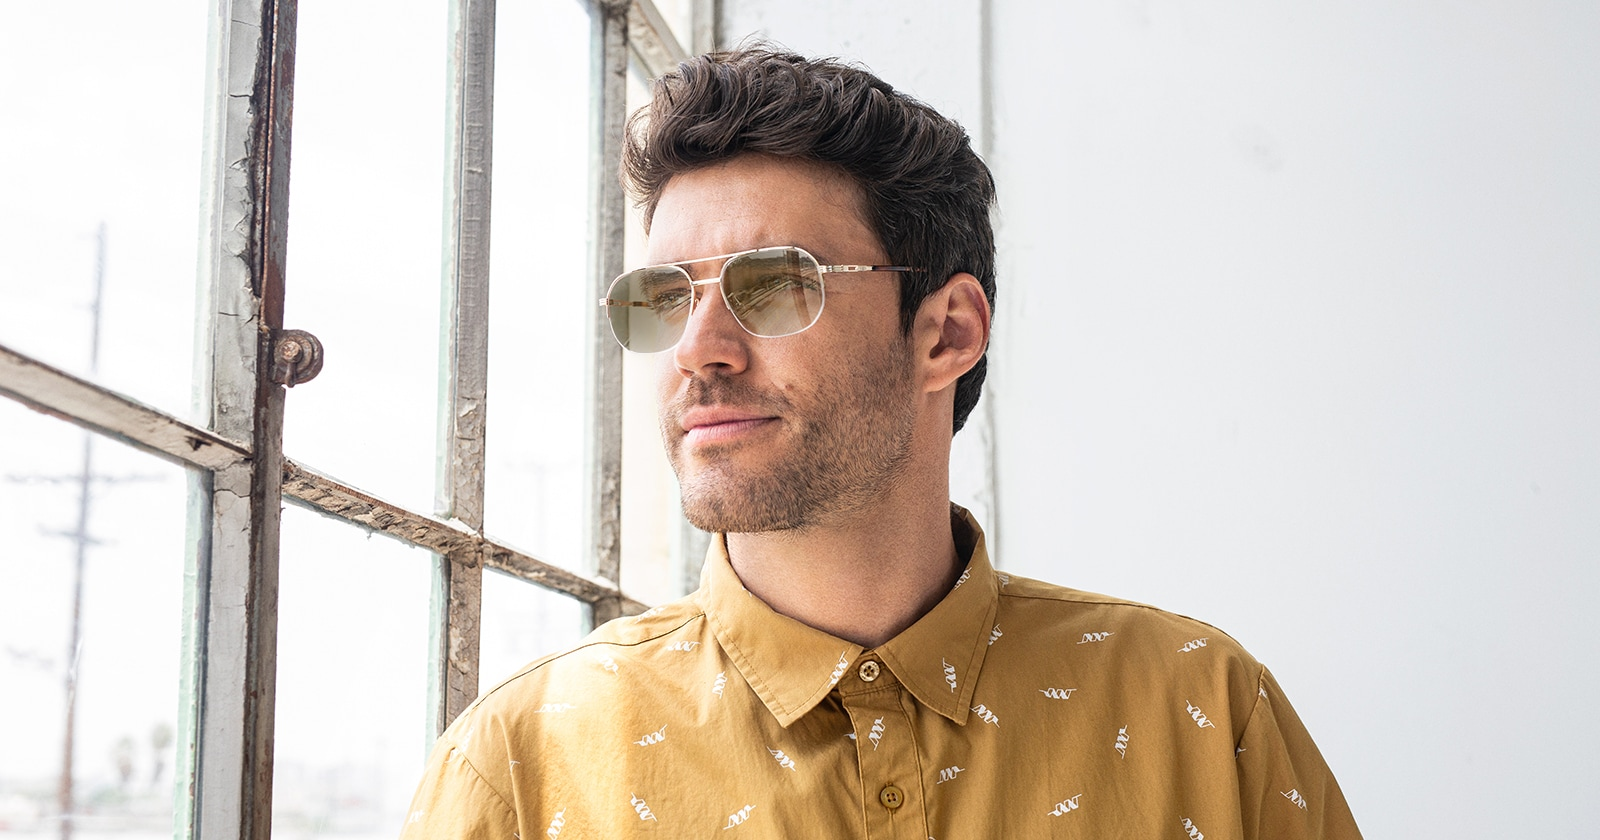 A man in front of a window wearing transition glasses